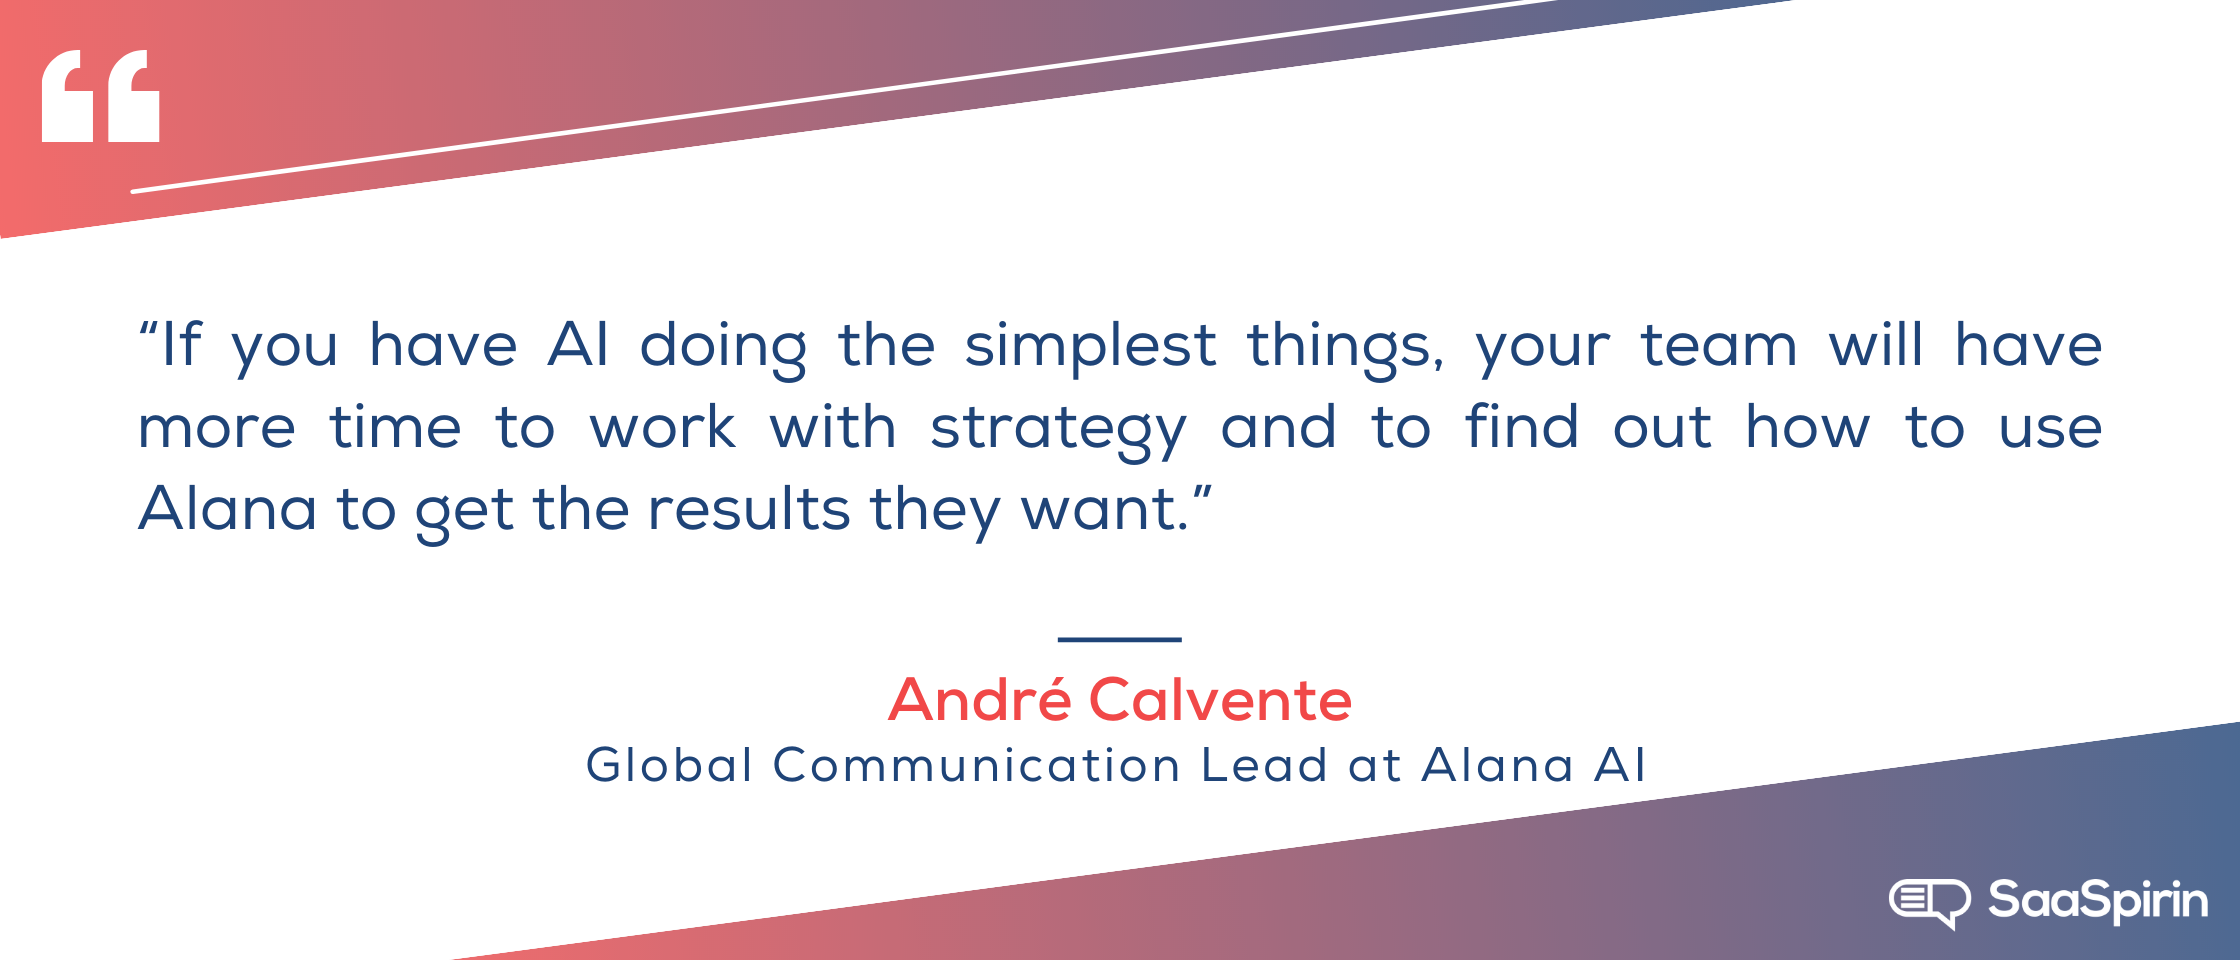 If-you-have-AI-doing-the-simplest-things-your-team-will-have-more-time-to-work-with-strategy-and-to-find-out-how-to-use-Alana-to-get-the-results-they-want.png